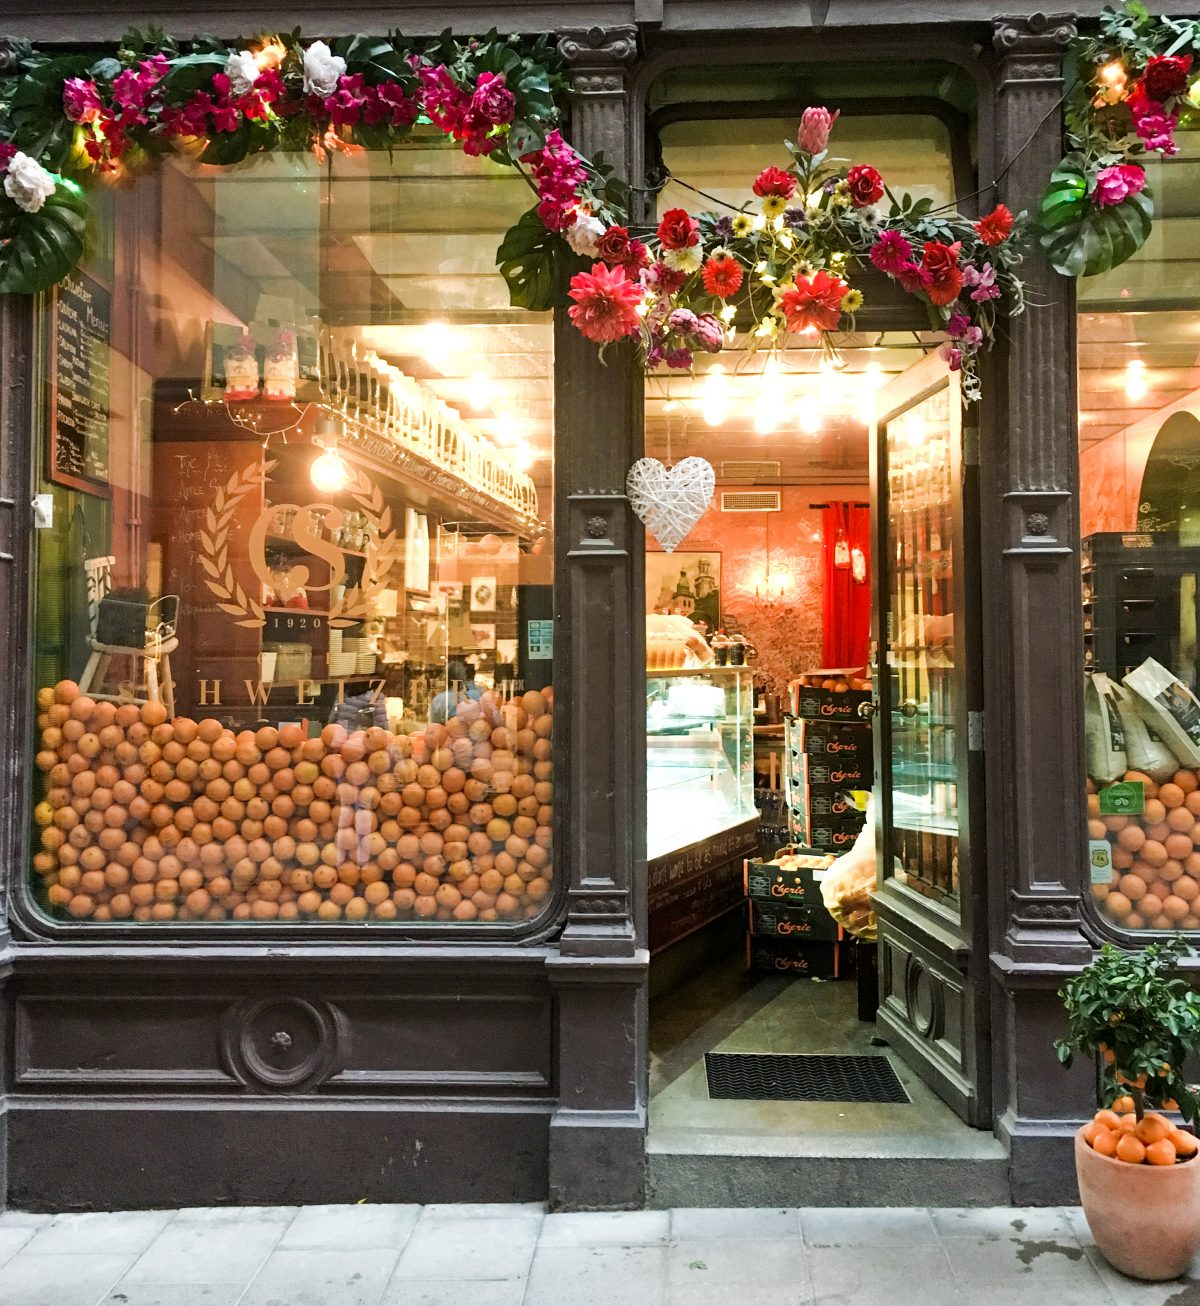 A beautifully decorated store front in Stockholm Sweden